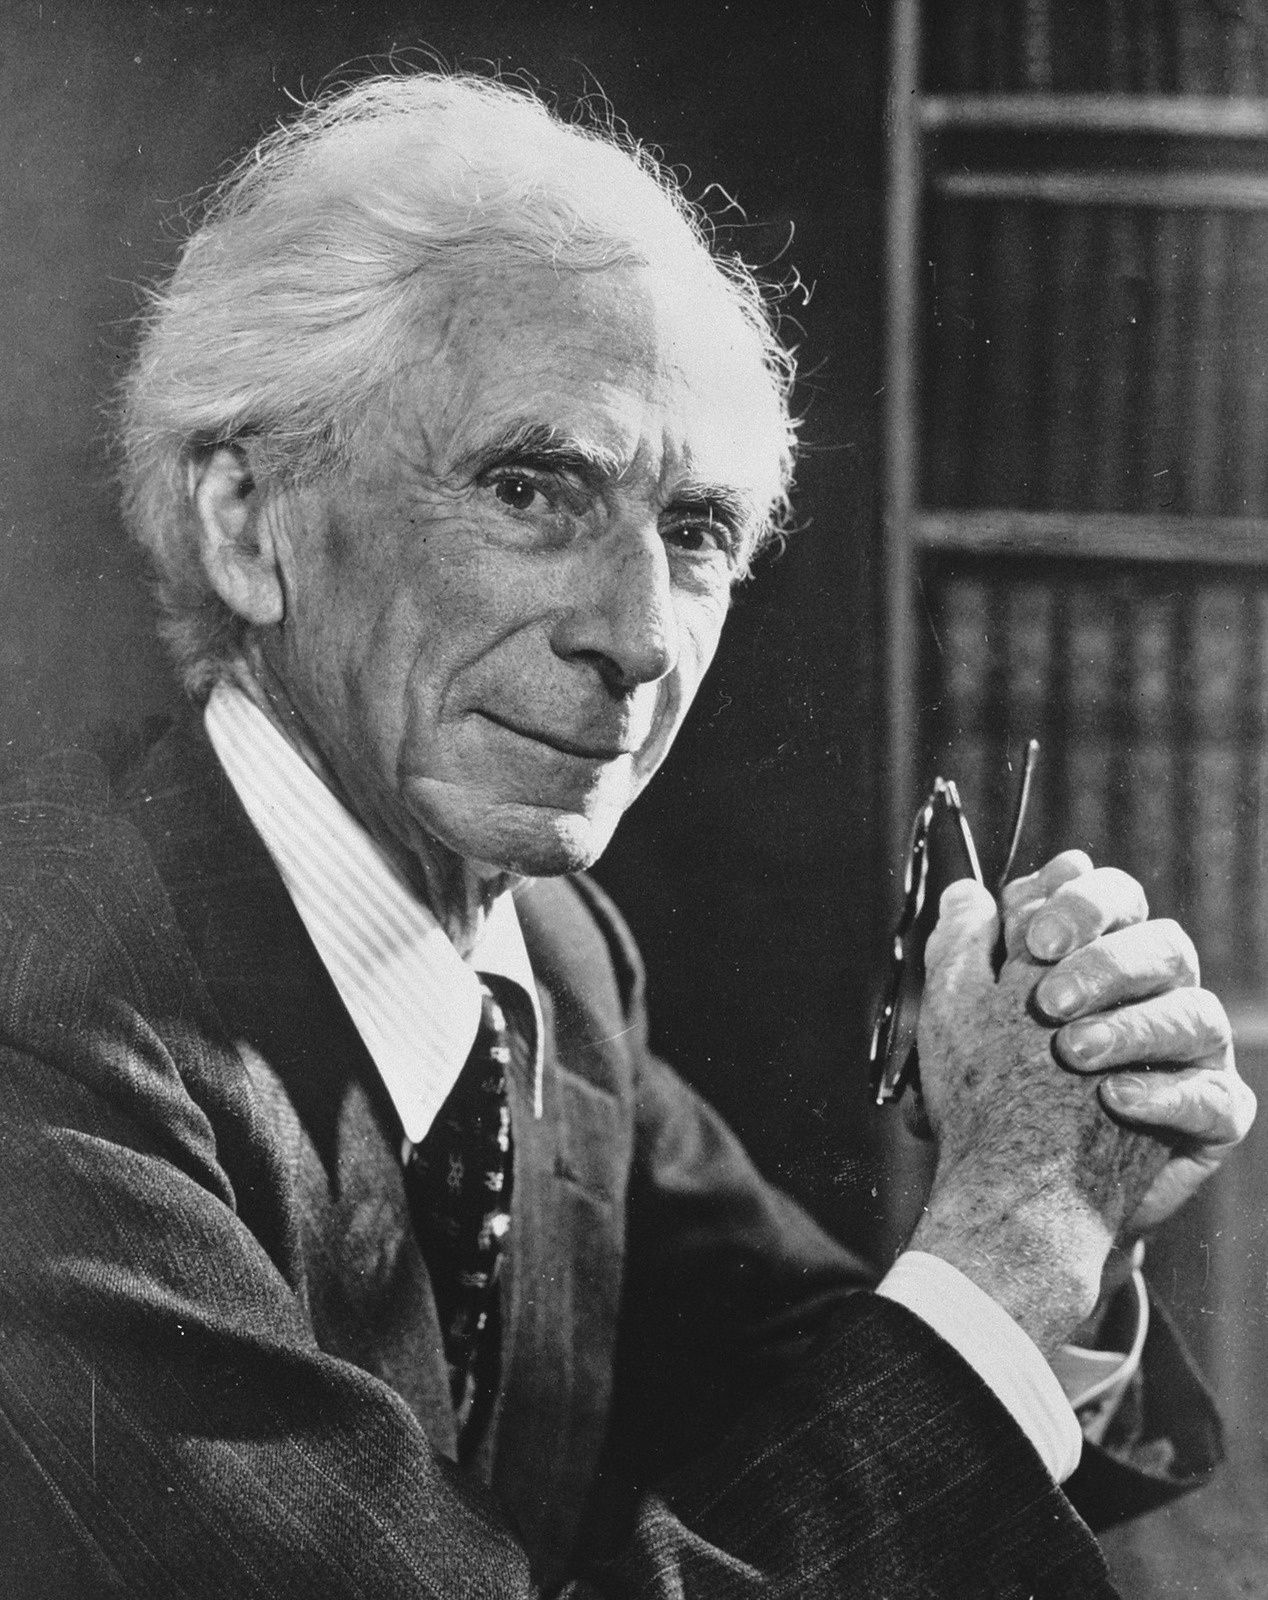 Bertrand Russell, 28 novembre 1957, photographie Onedward / Anefo